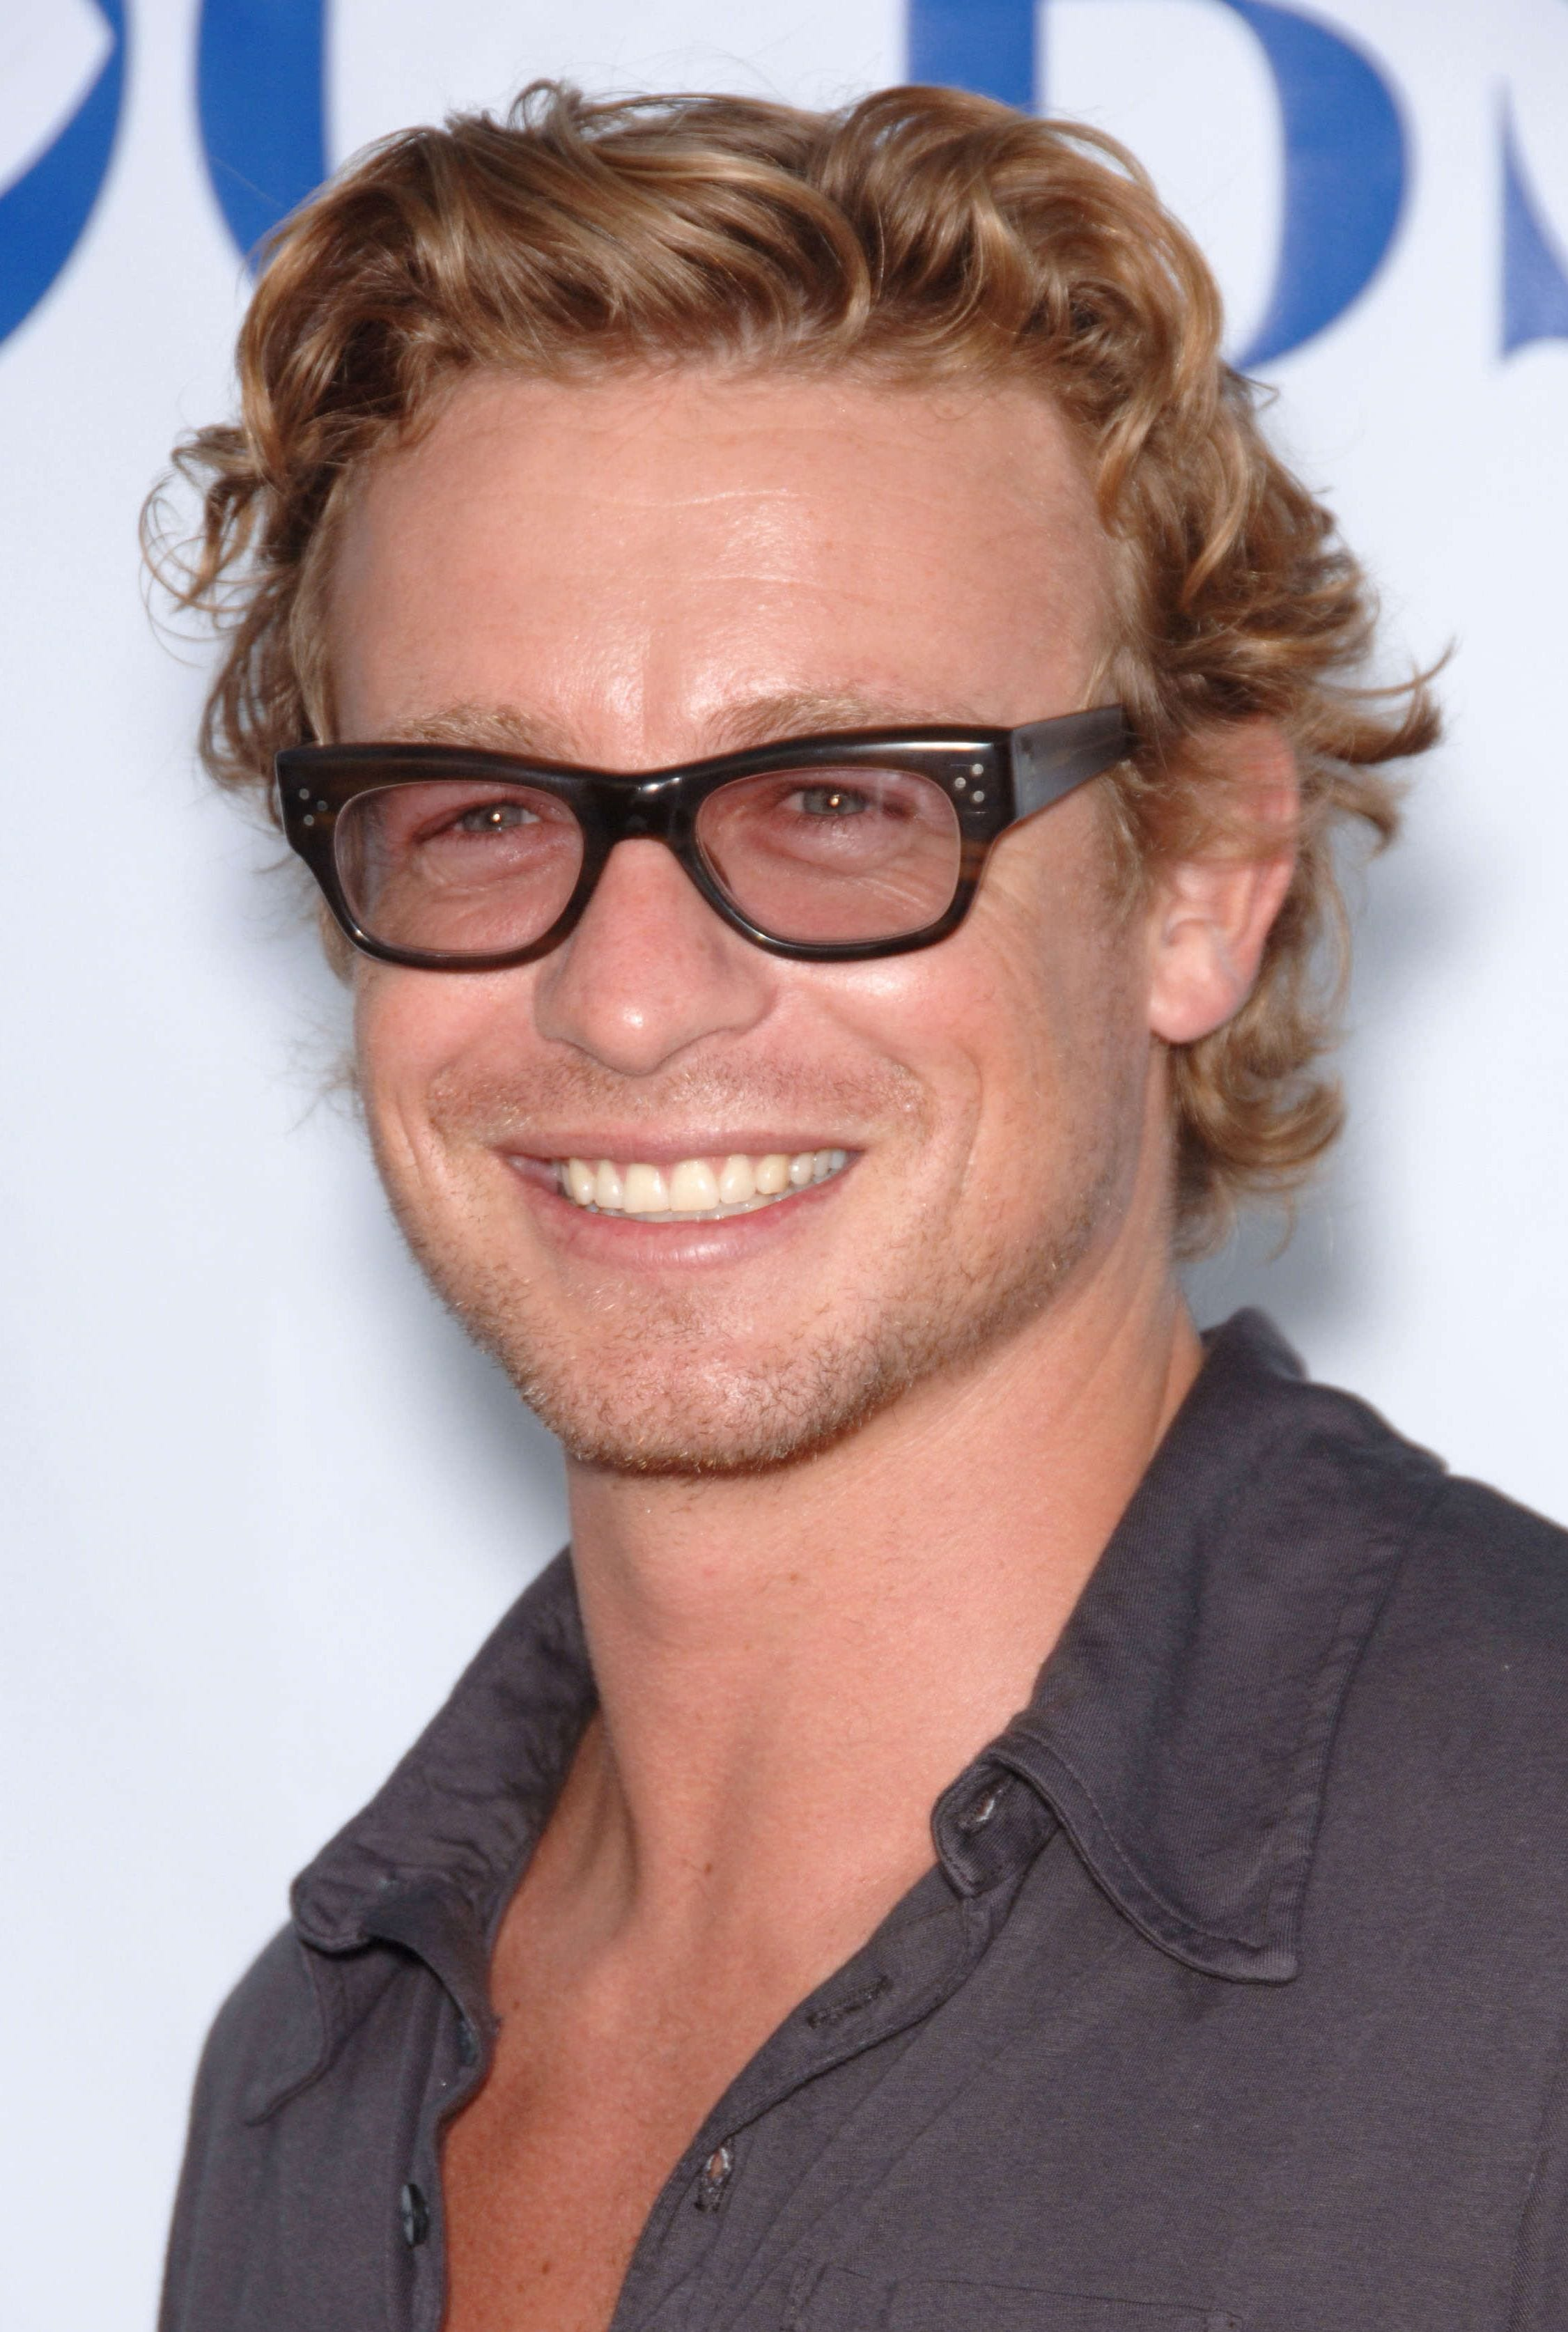 Simon Baker Blonde Bro Flow with Glasses e1538985297602